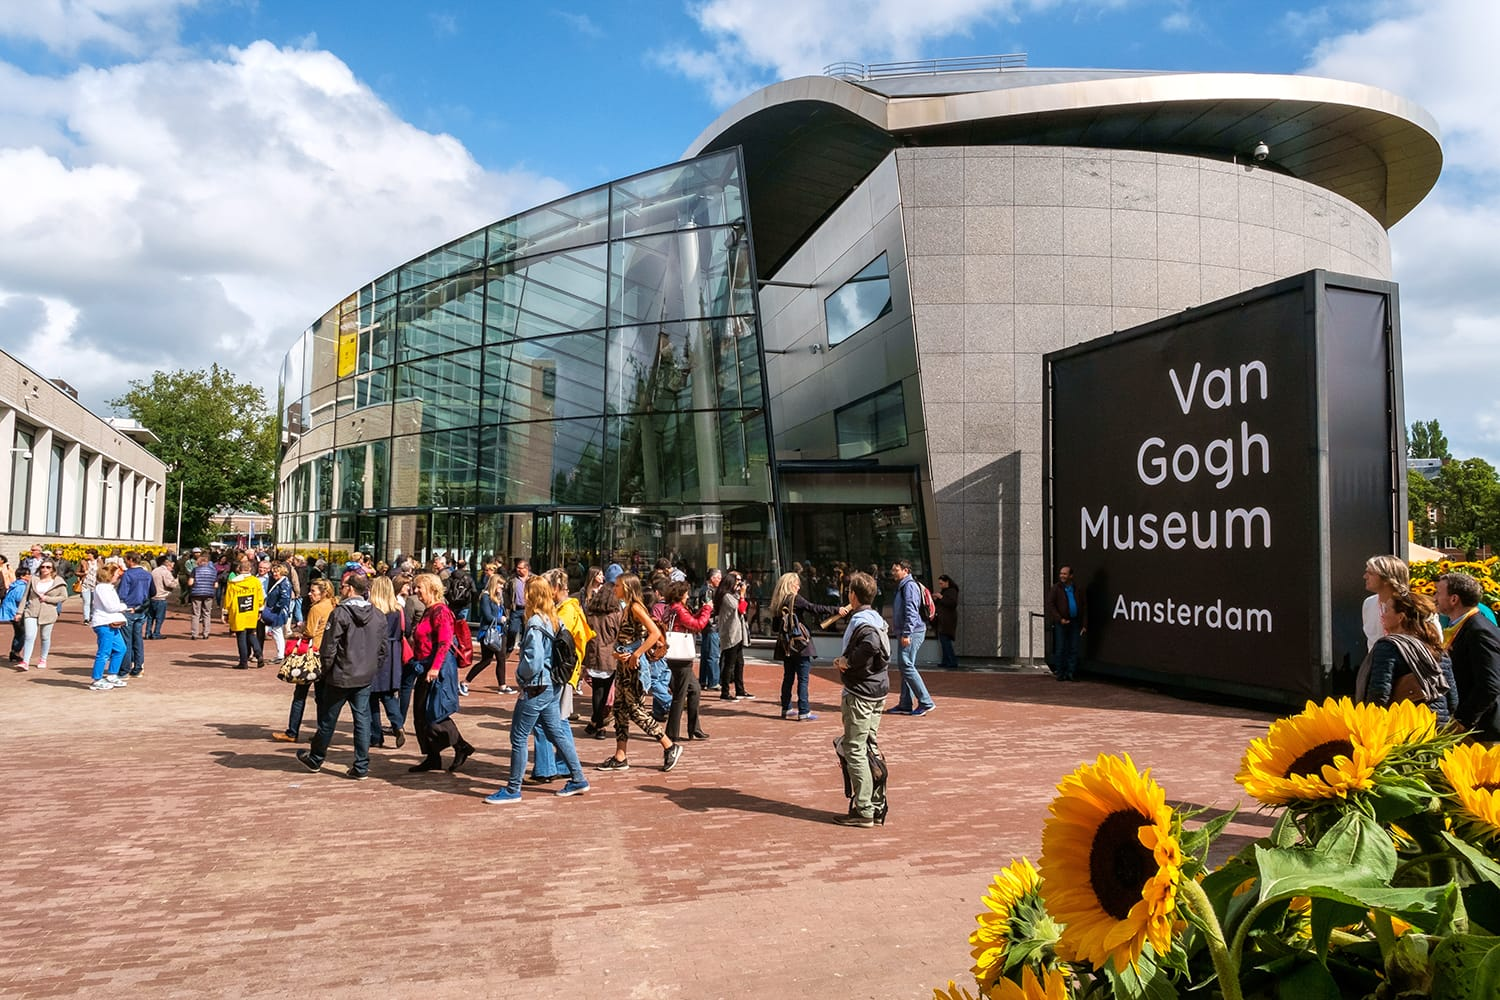 crowd in front of the new wing of the Van Gogh Museum with sunflowers in the foreground